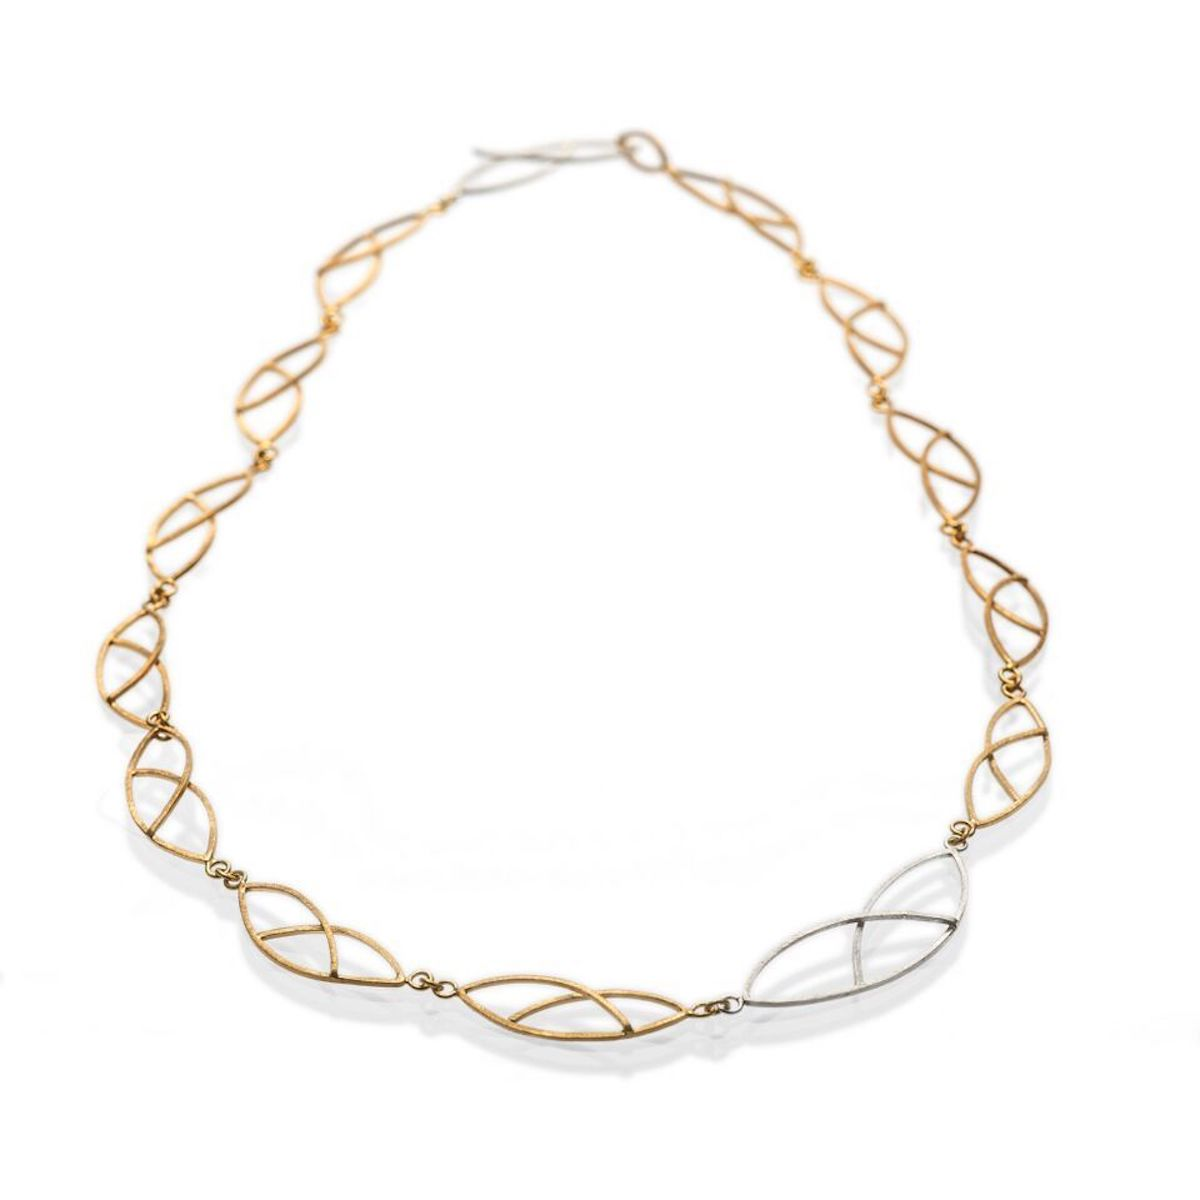 NA 3 | GOLD PLATED NECKLACE